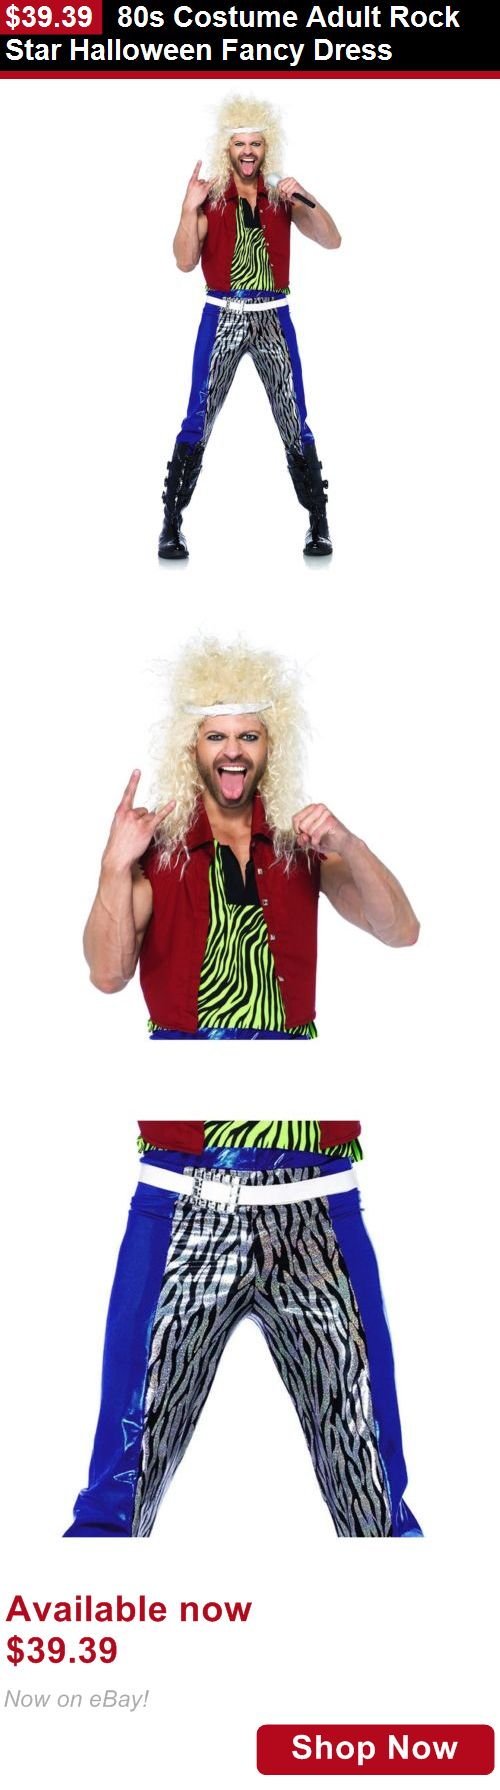 Costumes and reenactment attire: 80S Costume Adult Rock Star Halloween Fancy Dress BUY IT NOW ONLY: $39.39